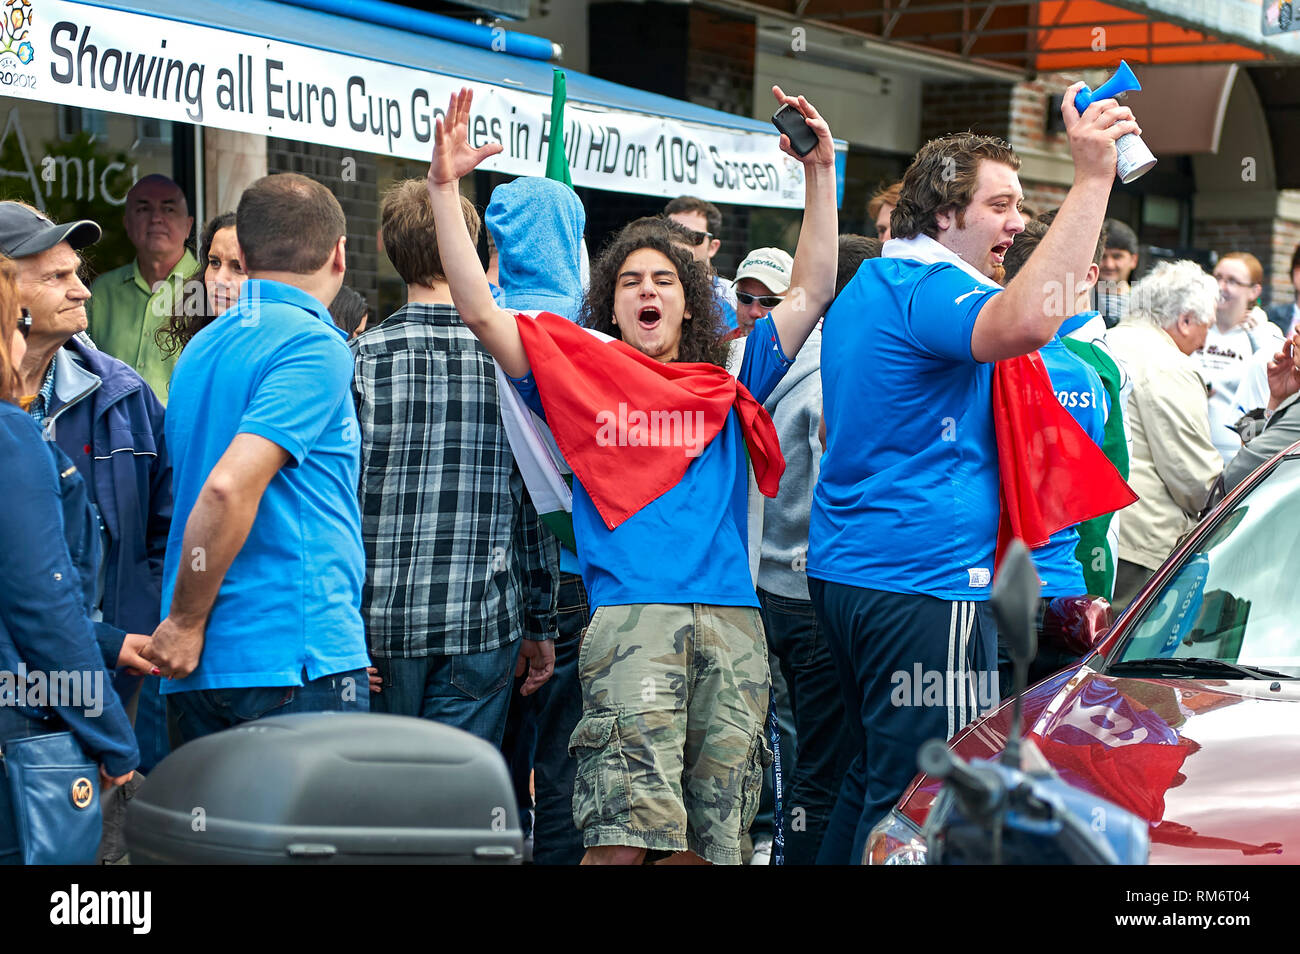 Vancouver, B.C., Canada - June 28, 2012: Italian football fans clebrating the victory at the semi finals at the 2012 UEFA European Championship Stock Photo